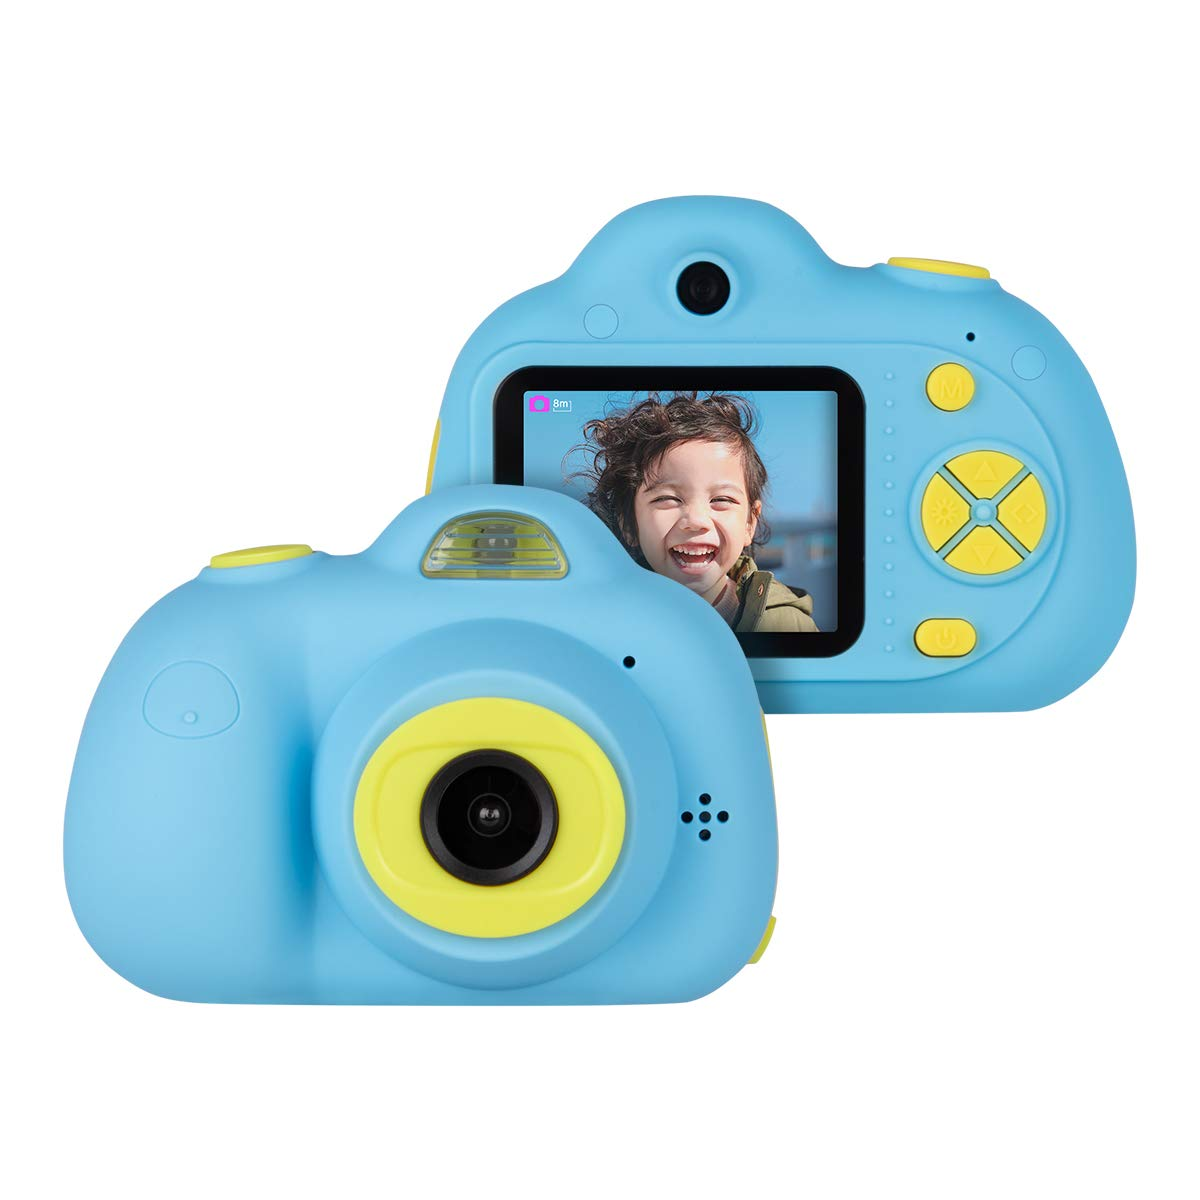 Kids Cameras Dual Selfie Digital Camera HD Video Recorder Action Camera Camcorder for 4-9 Year Old Kids Birthday Festival Gifts Toys for Children Boys Girls 2.0'' LCD Screen 4X Digital Zoom (Blue)